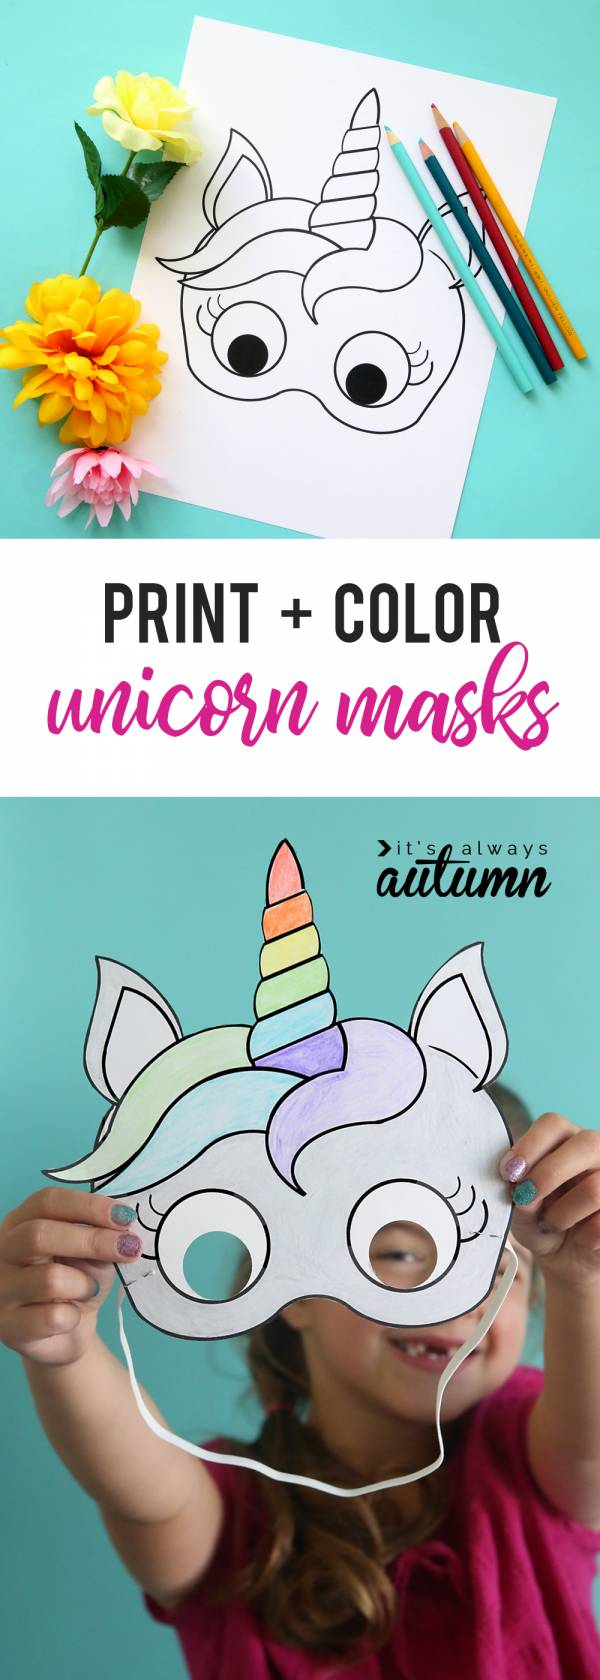 photo relating to Free Printable Unicorn Mask titled Do it yourself Unicorn Masks in the direction of Print and Shade S Scheduling